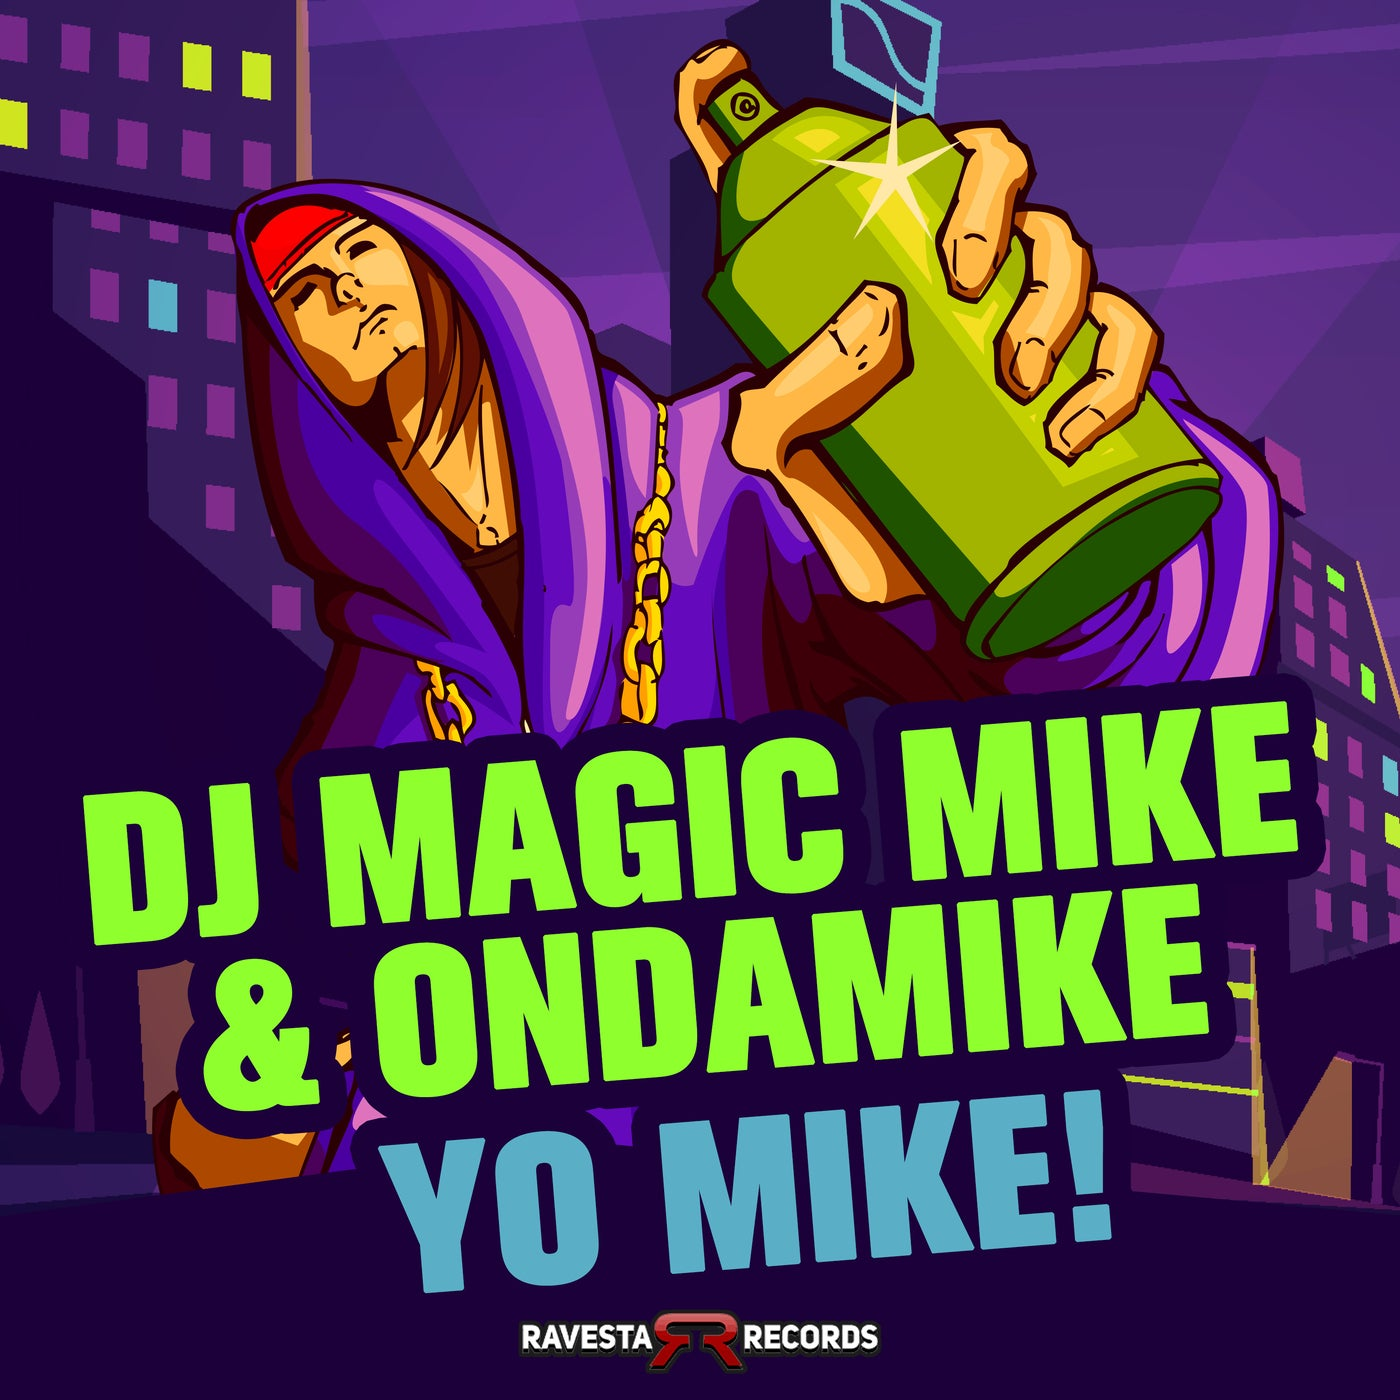 Yo Mike! (VIP Mix)